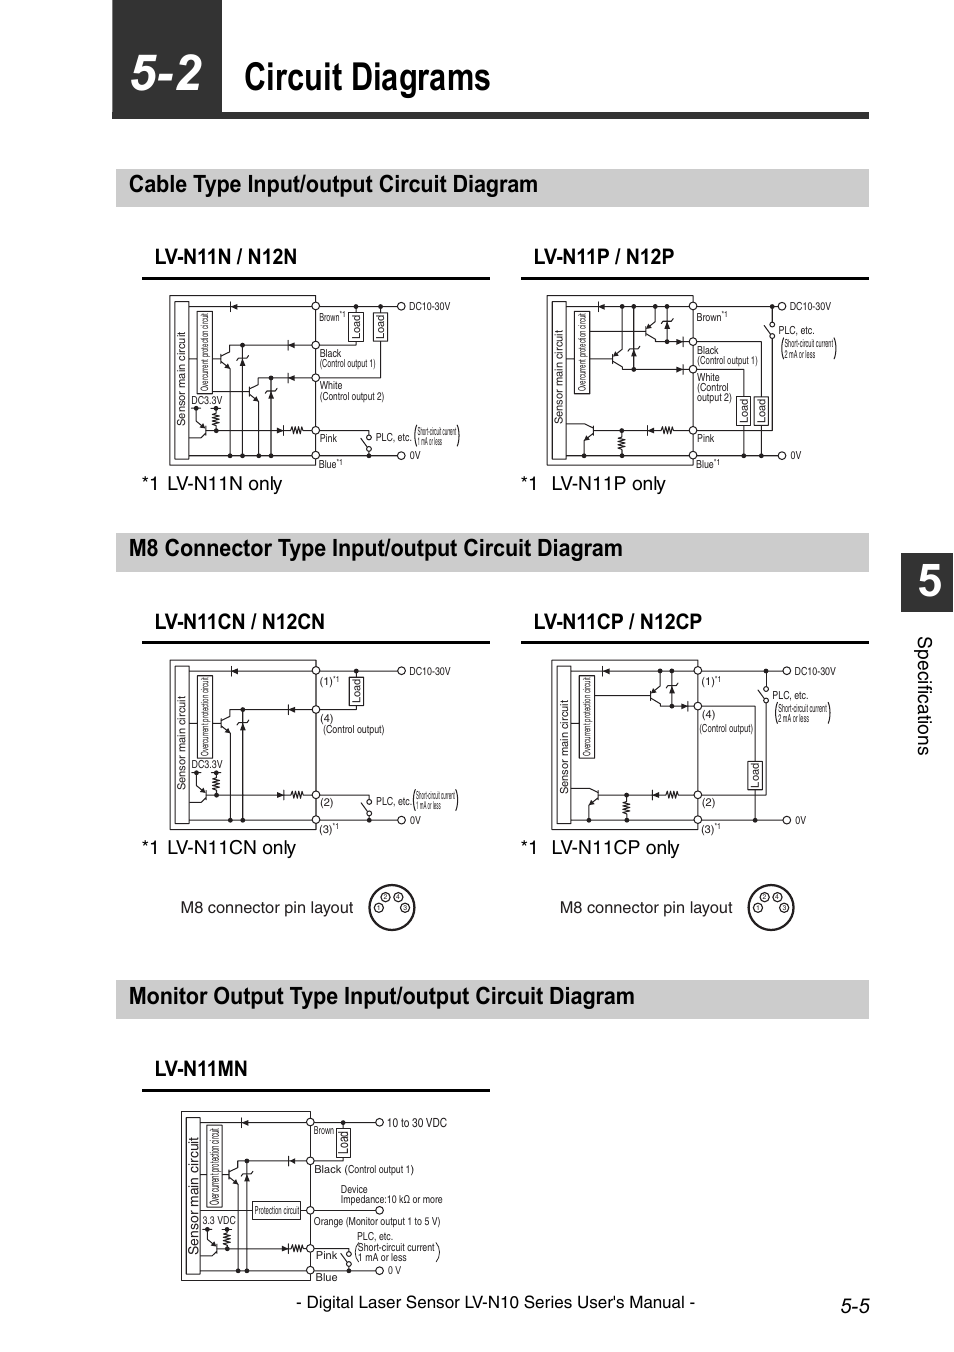 circuit diagrams cable type input output circuit diagram m8 rh manualsdir com